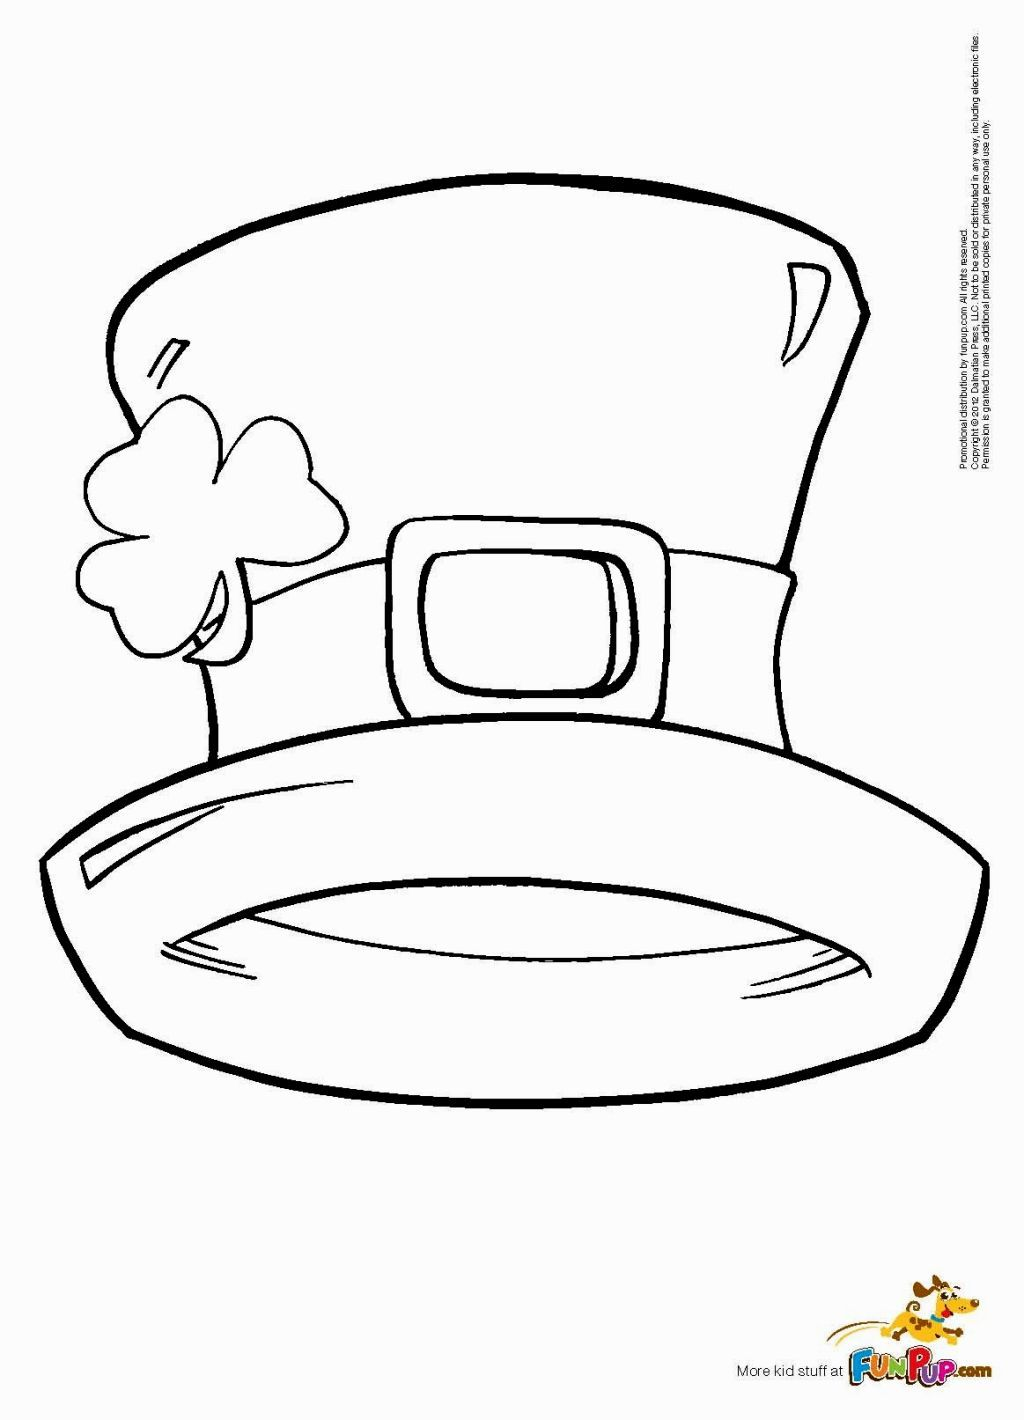 Coloring Pages For March Printable Coloring Pages Coloring